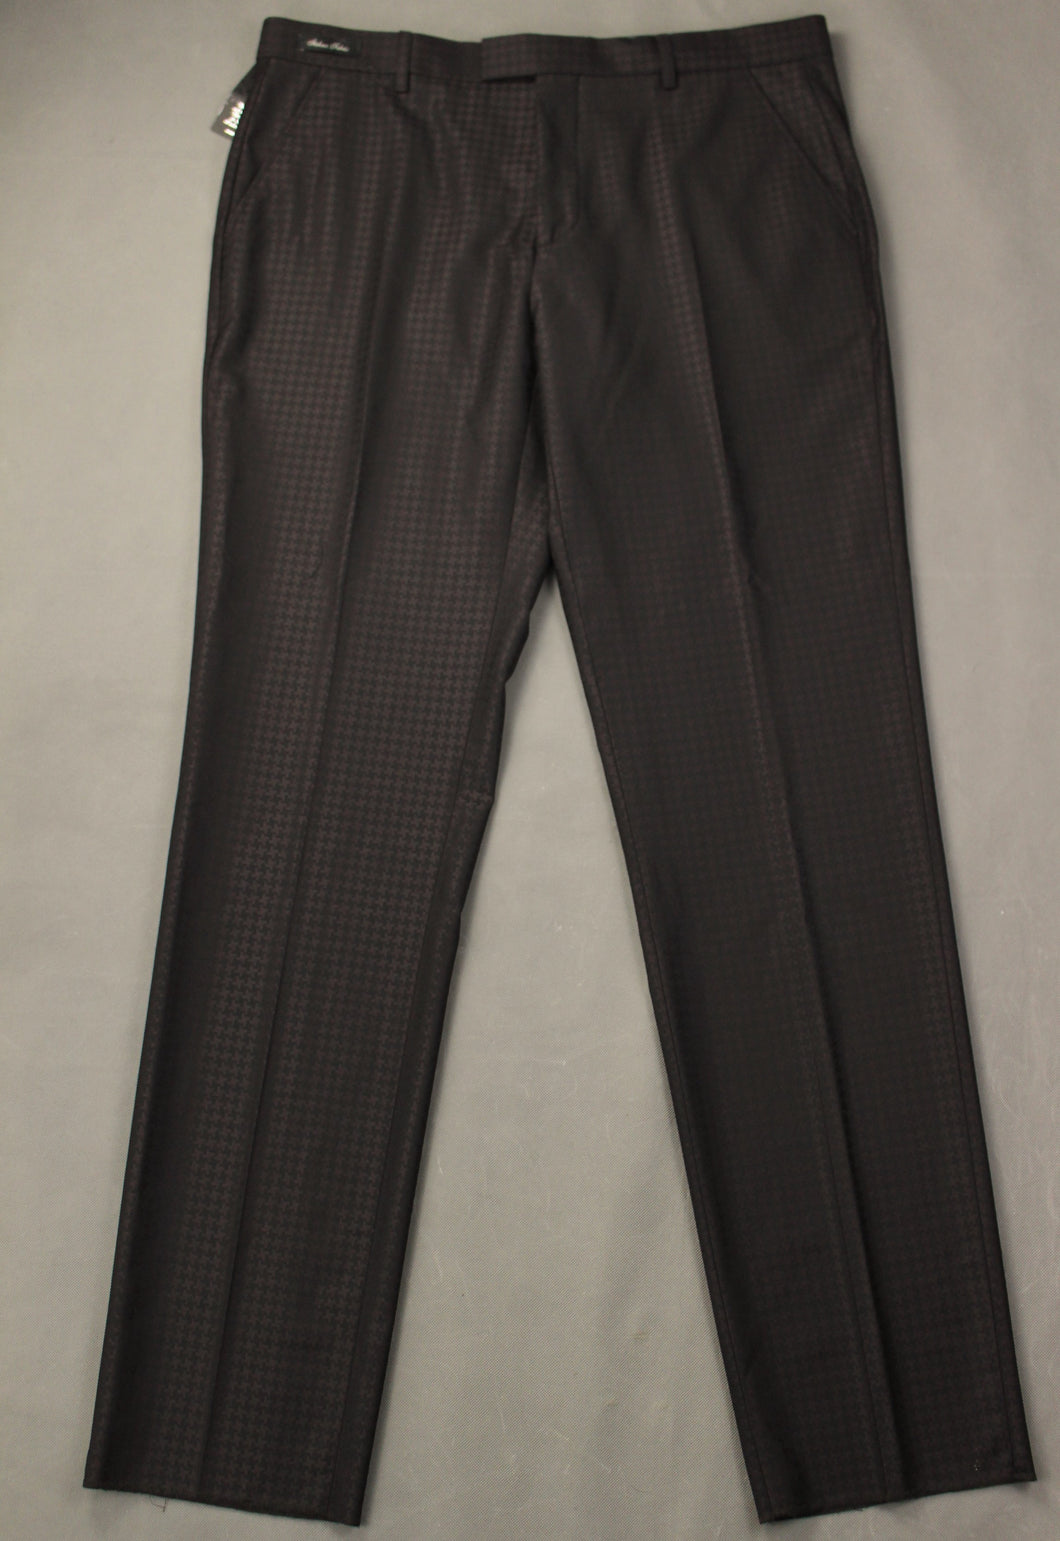 New TED BAKER PASHION Mens RAFAELT Brown Jacquard TROUSERS Size 36R - Waist 36